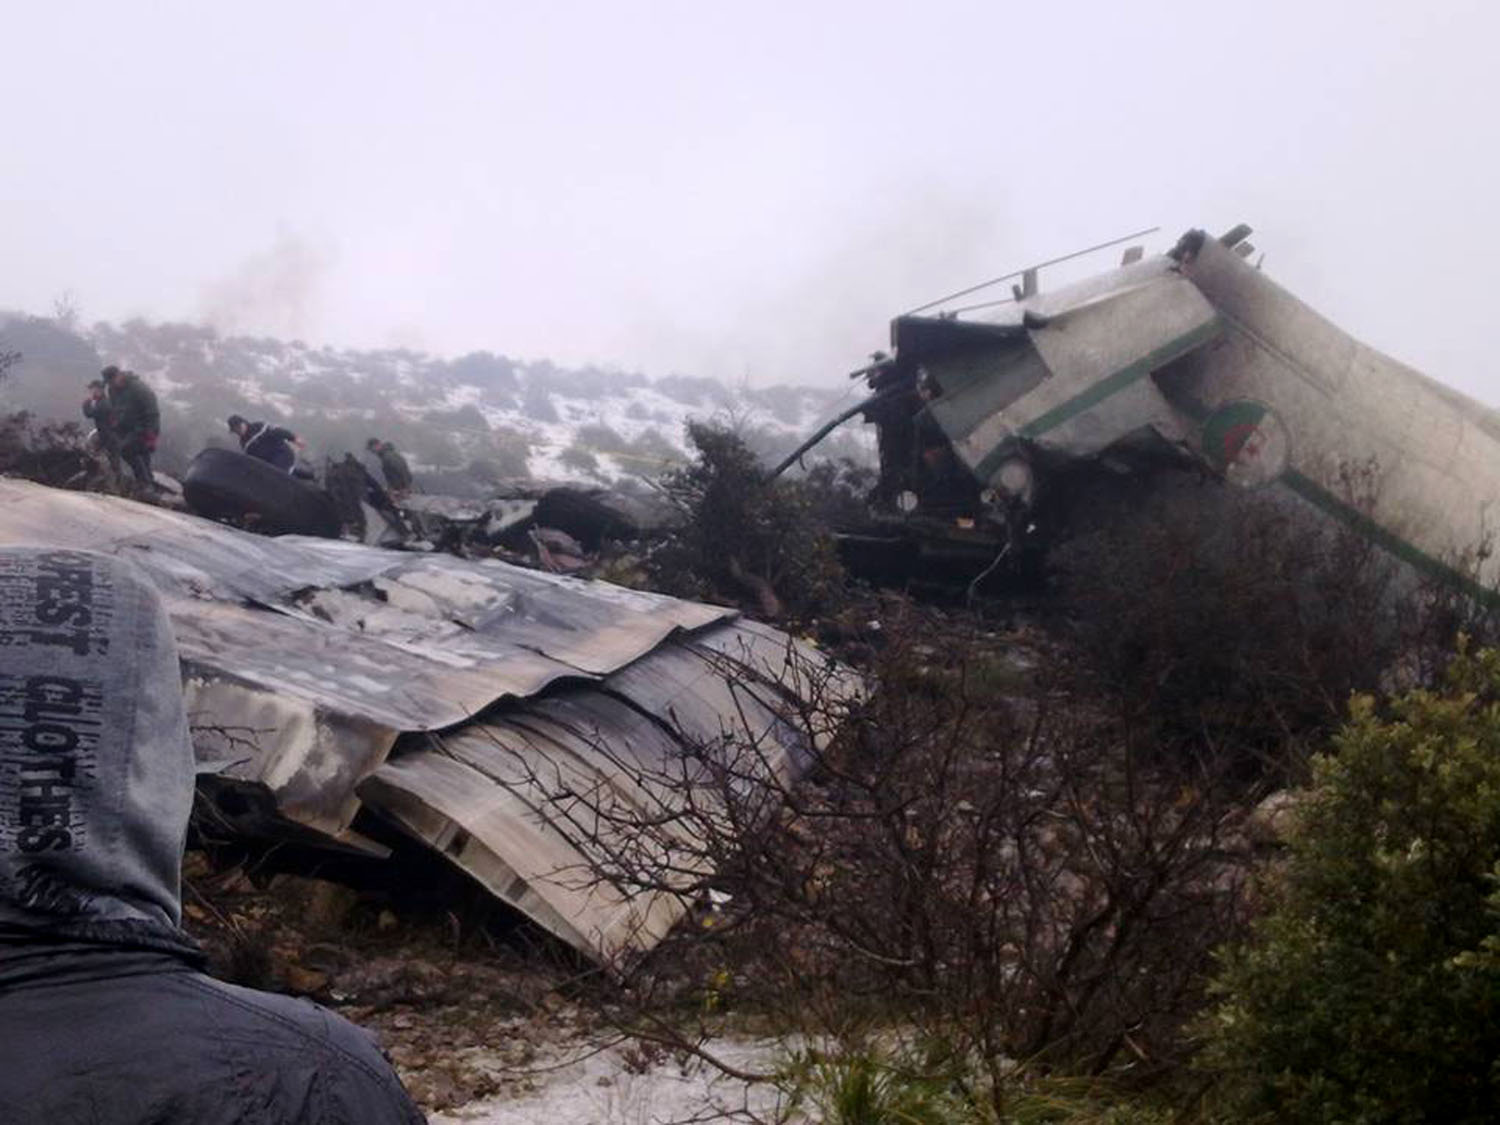 A man watches rescue workers working at the wreckage of Algerian military transport aircraft after it slammed into a mountain in the country's rugged eastern region, Feb. 11, 2014. A civil defense official said 102 people on board were killed but one person managed to survive. The U.S.-built C-130 Hercules transport crashed about noon near the town of Ain Kercha, 50 kilometers (30 miles) southeast of Constantine, the main city in eastern Algeria.